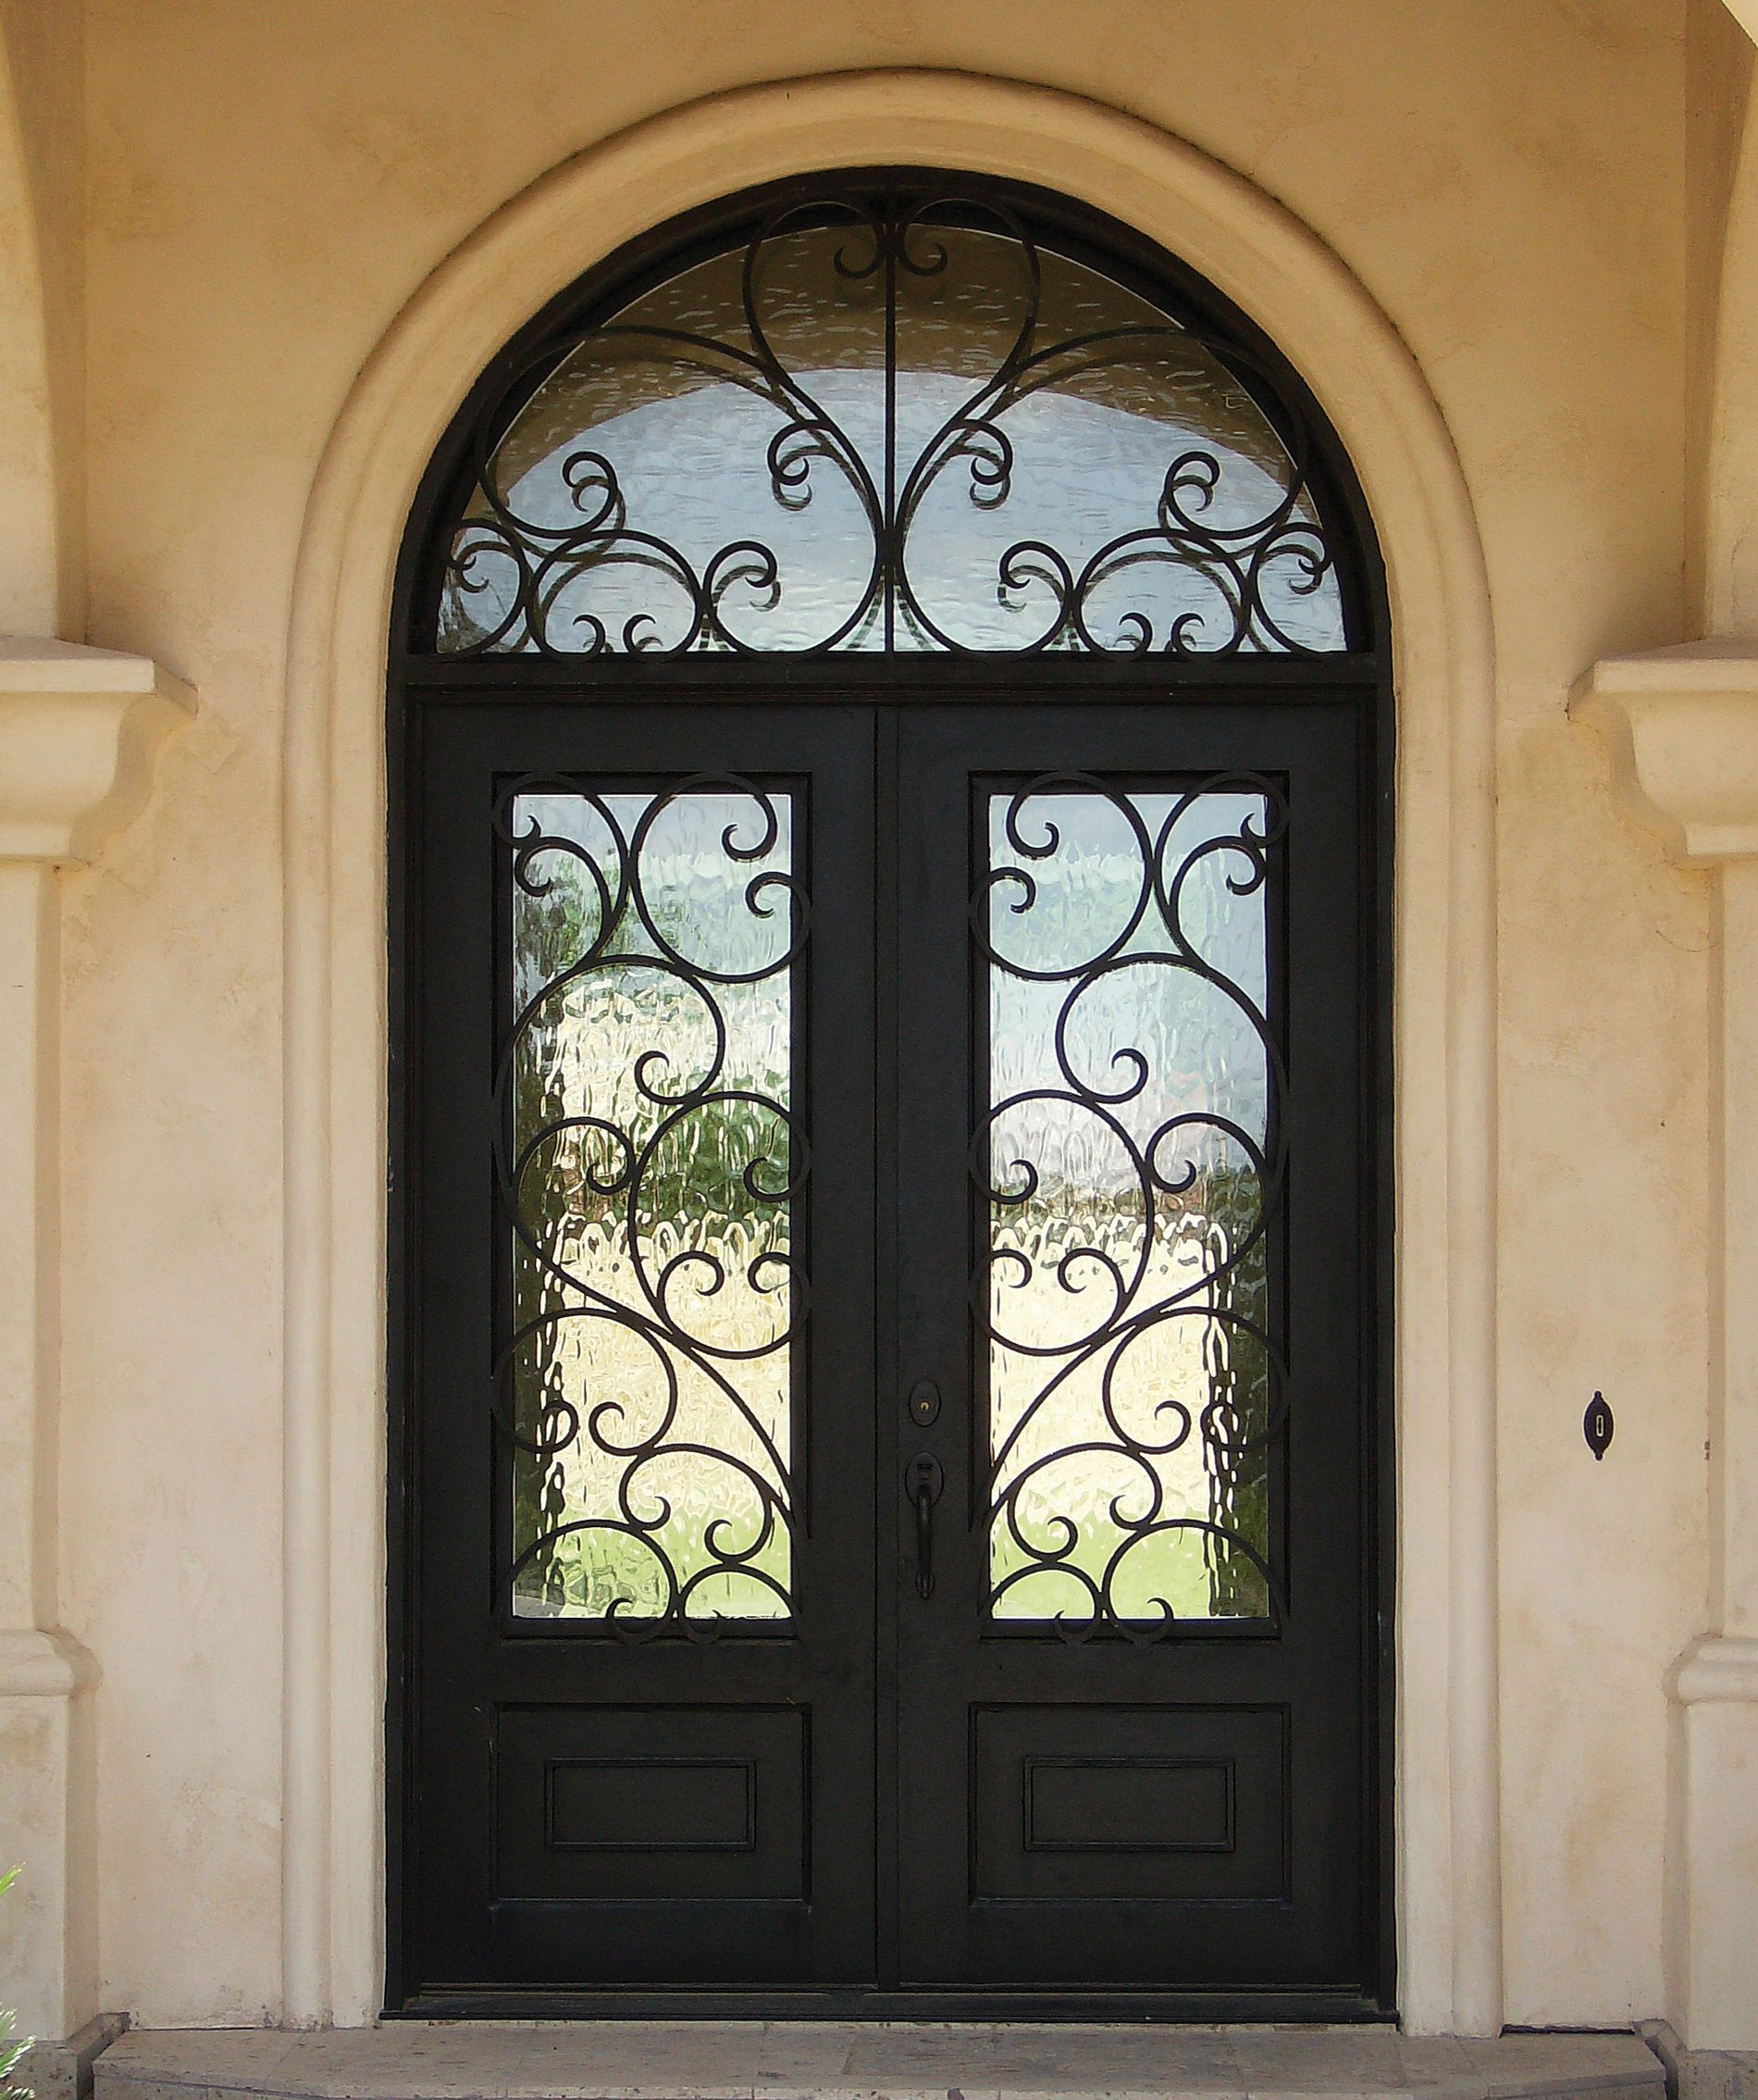 Double Durango Door - flemish glass with scrolls. Prefer the light style with an eyebrow top. Not sure if we need the transom on top or not. & Elegance | No Place Like Home- Doors | Pinterest | Doors pezcame.com